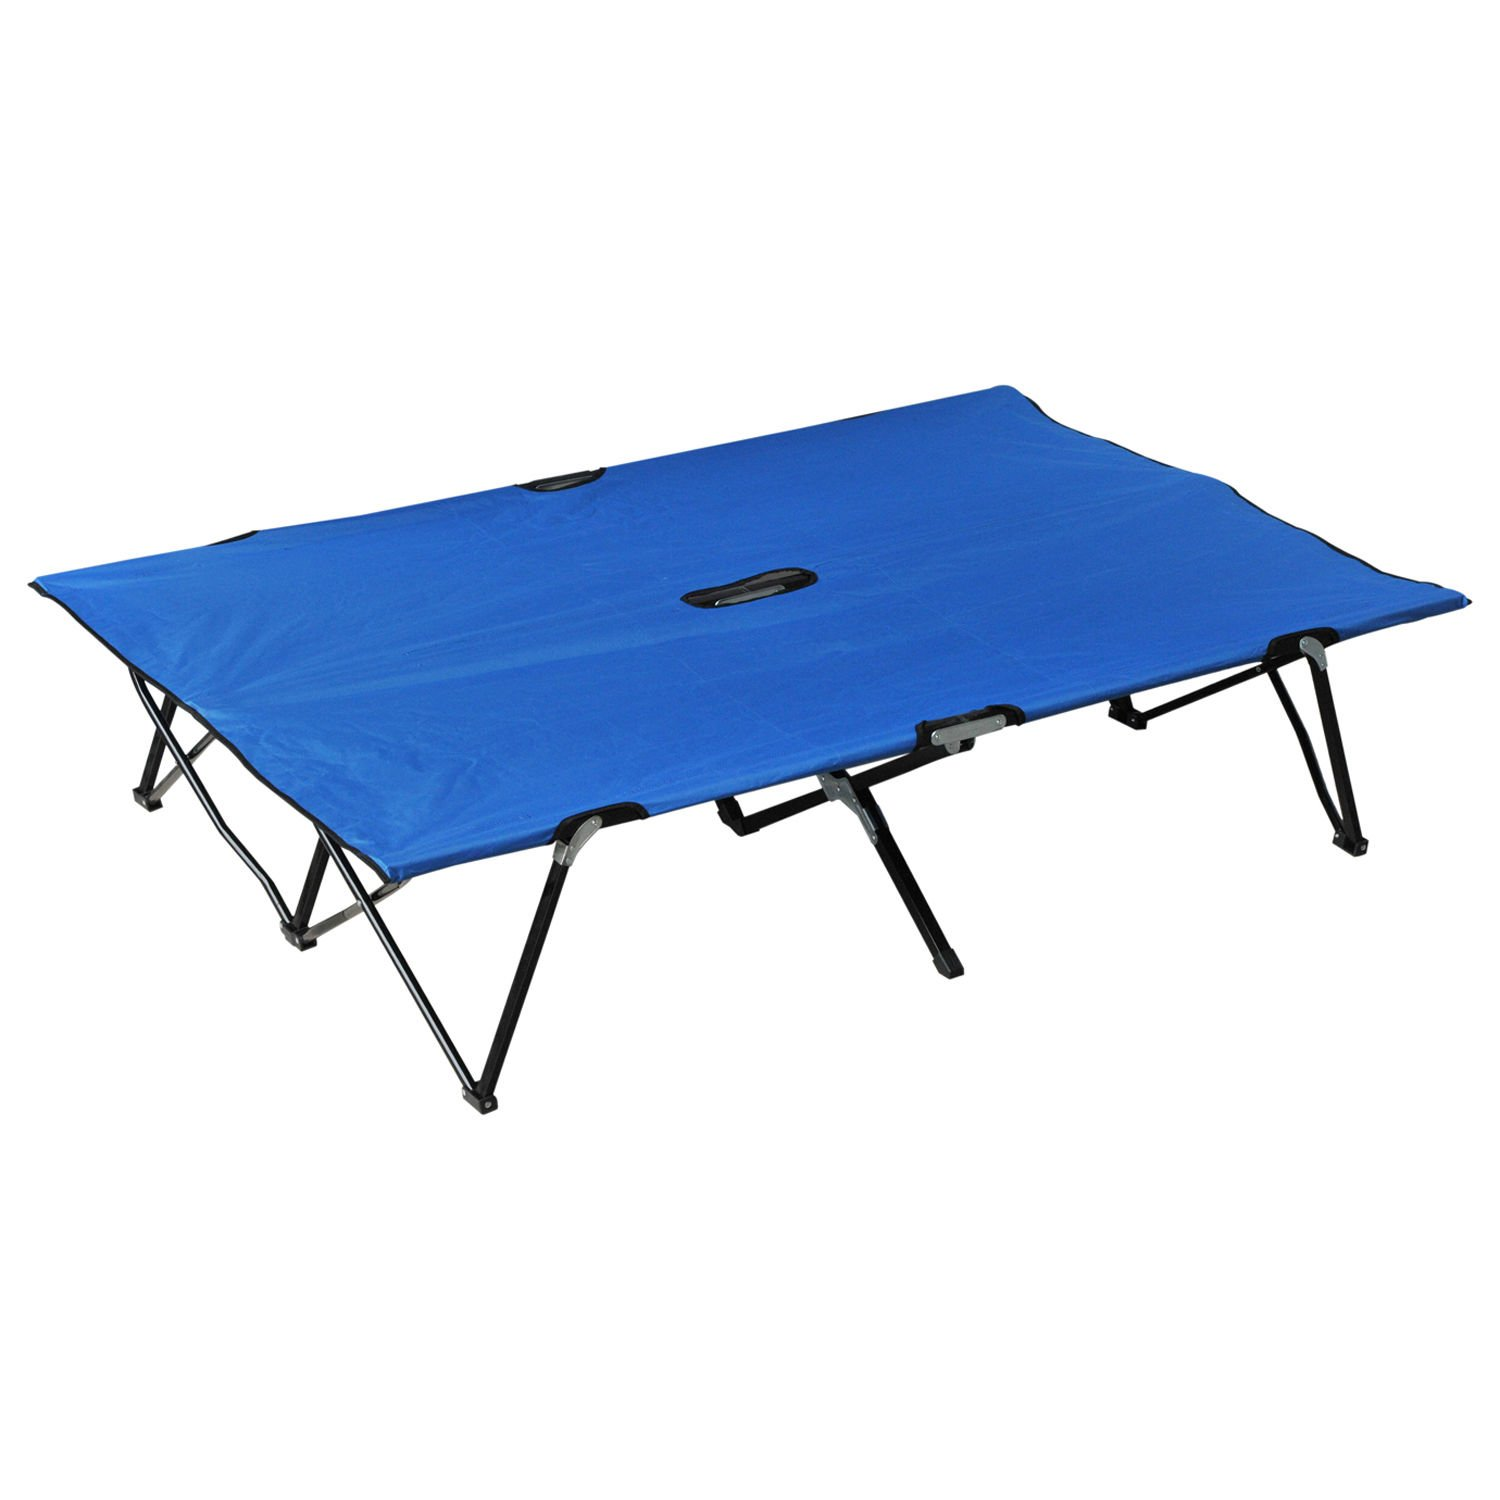 Outsunny 76'' Two Person Double Wide Folding Camping Cot - Blue by Outsunny